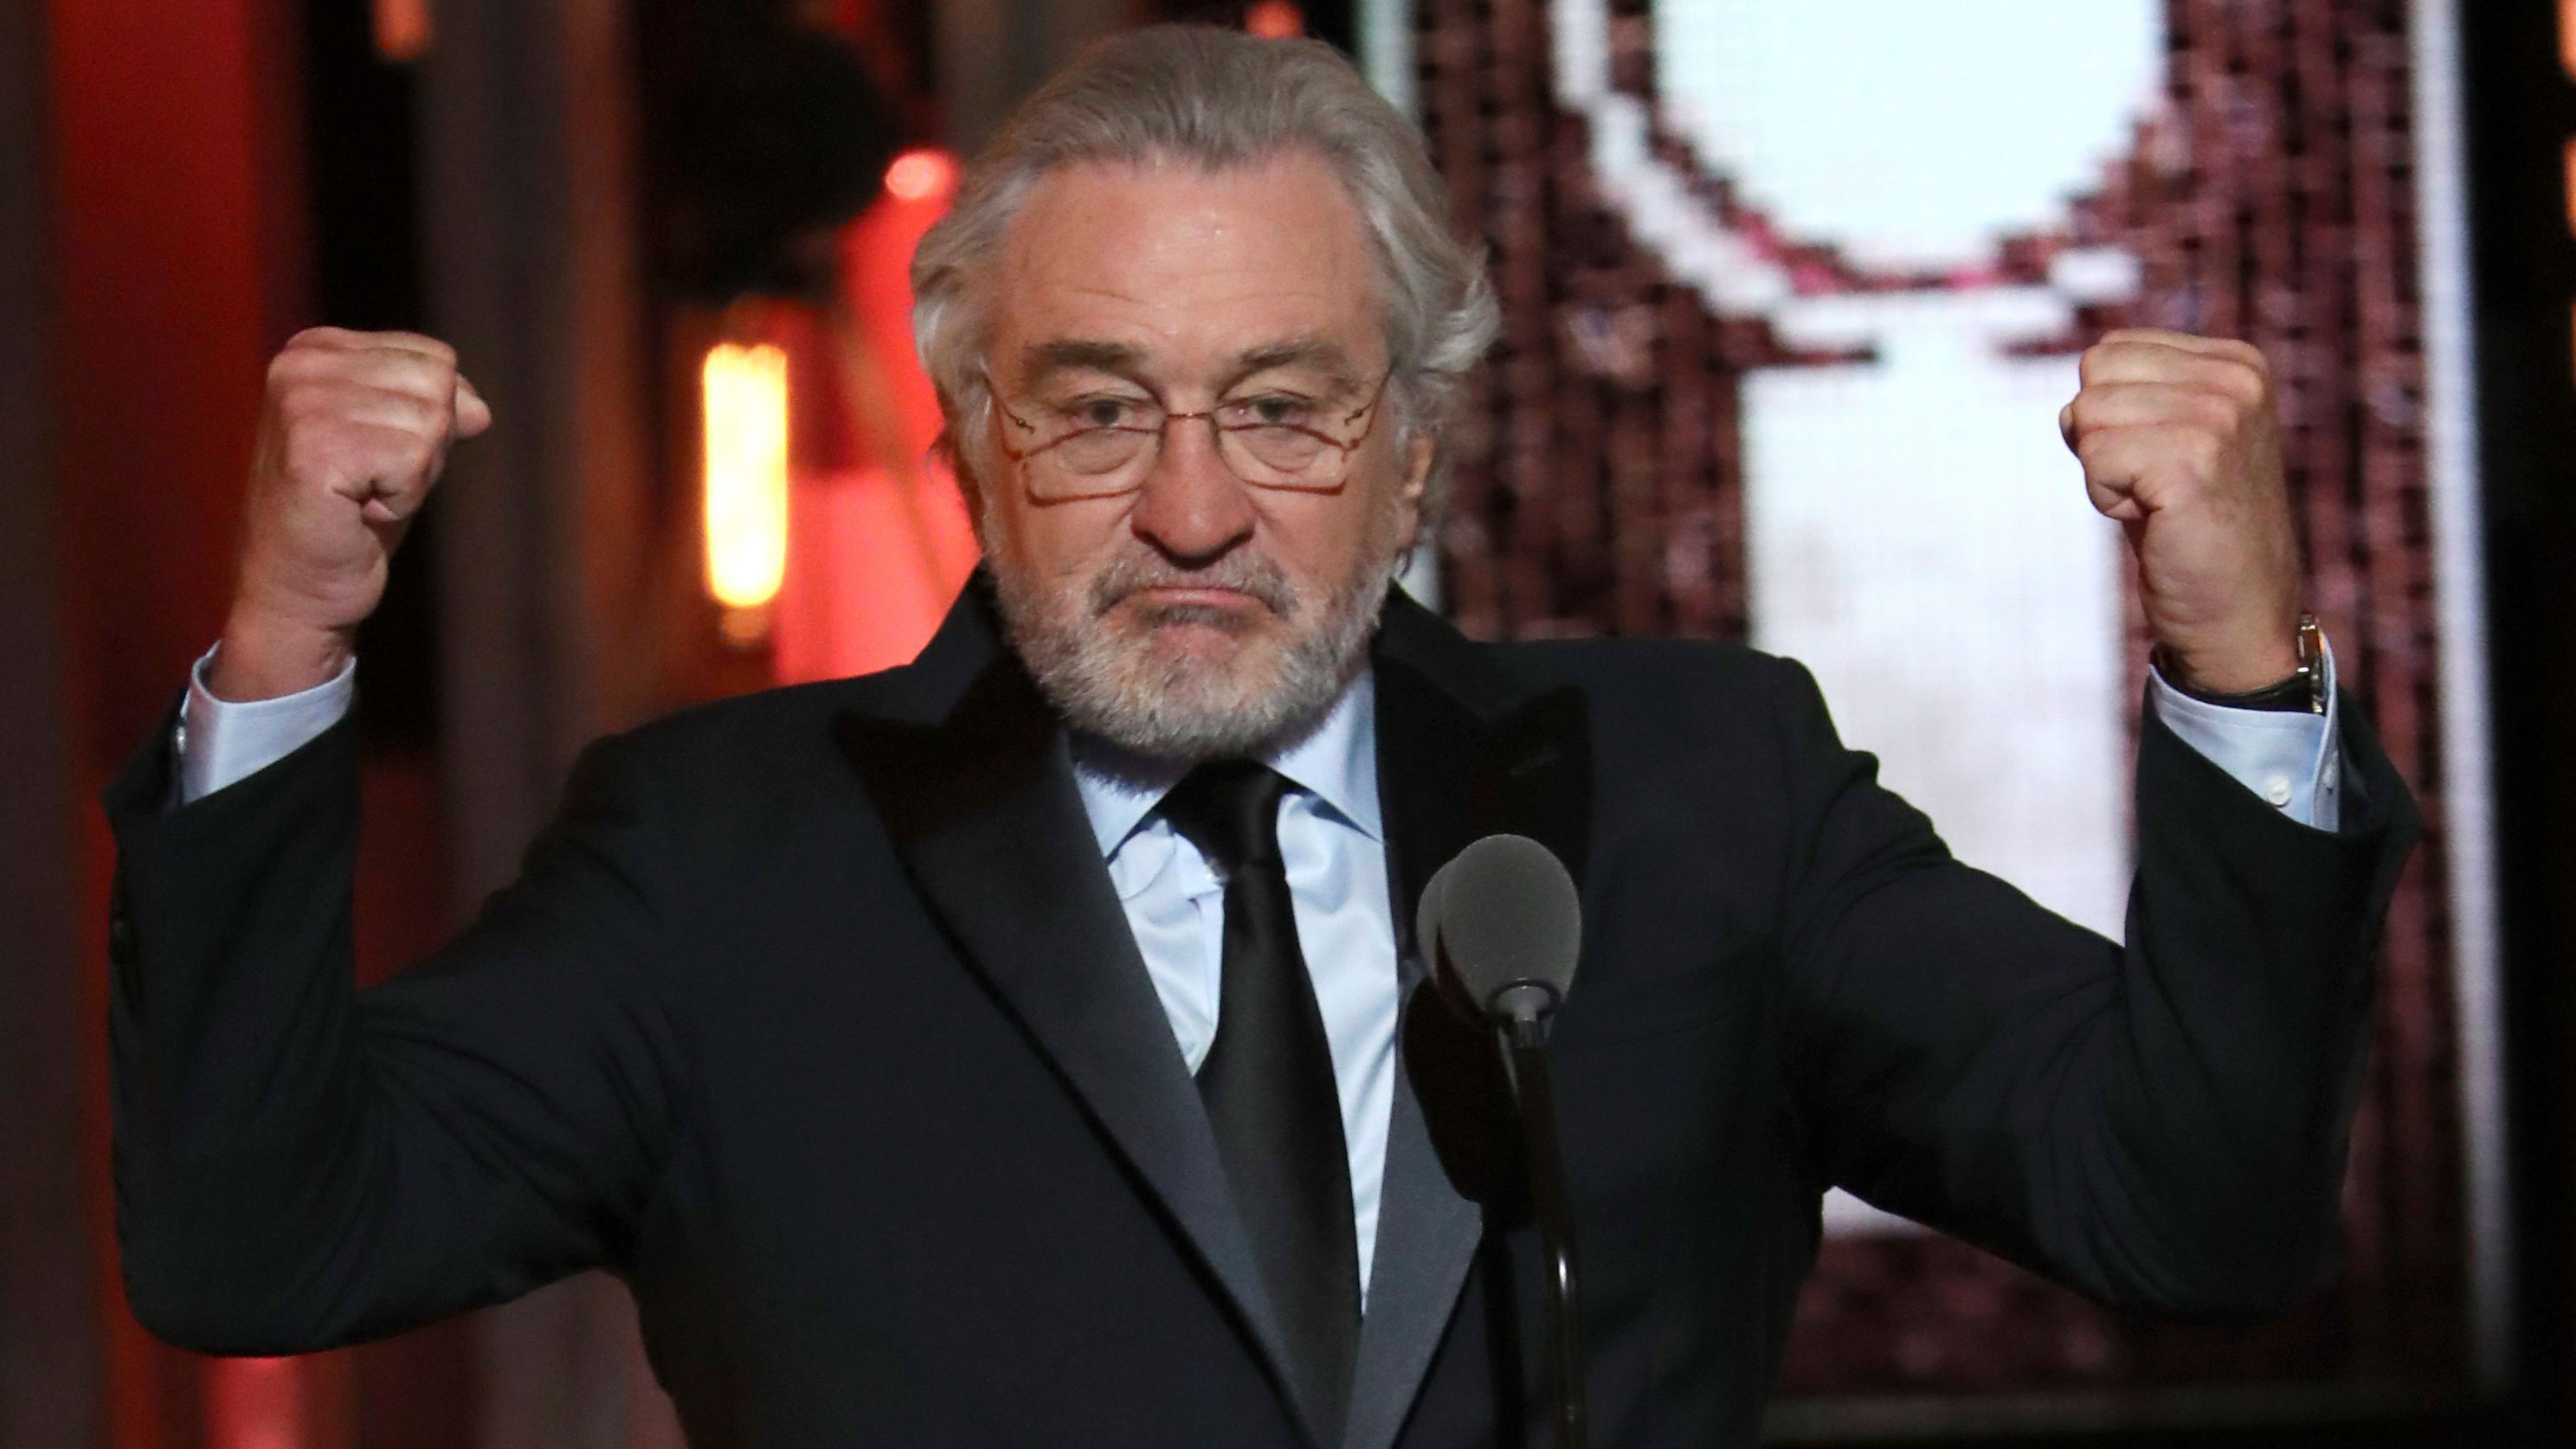 Robert De Niro bleeped at Tony Awards for Pres. Trump F-bomb